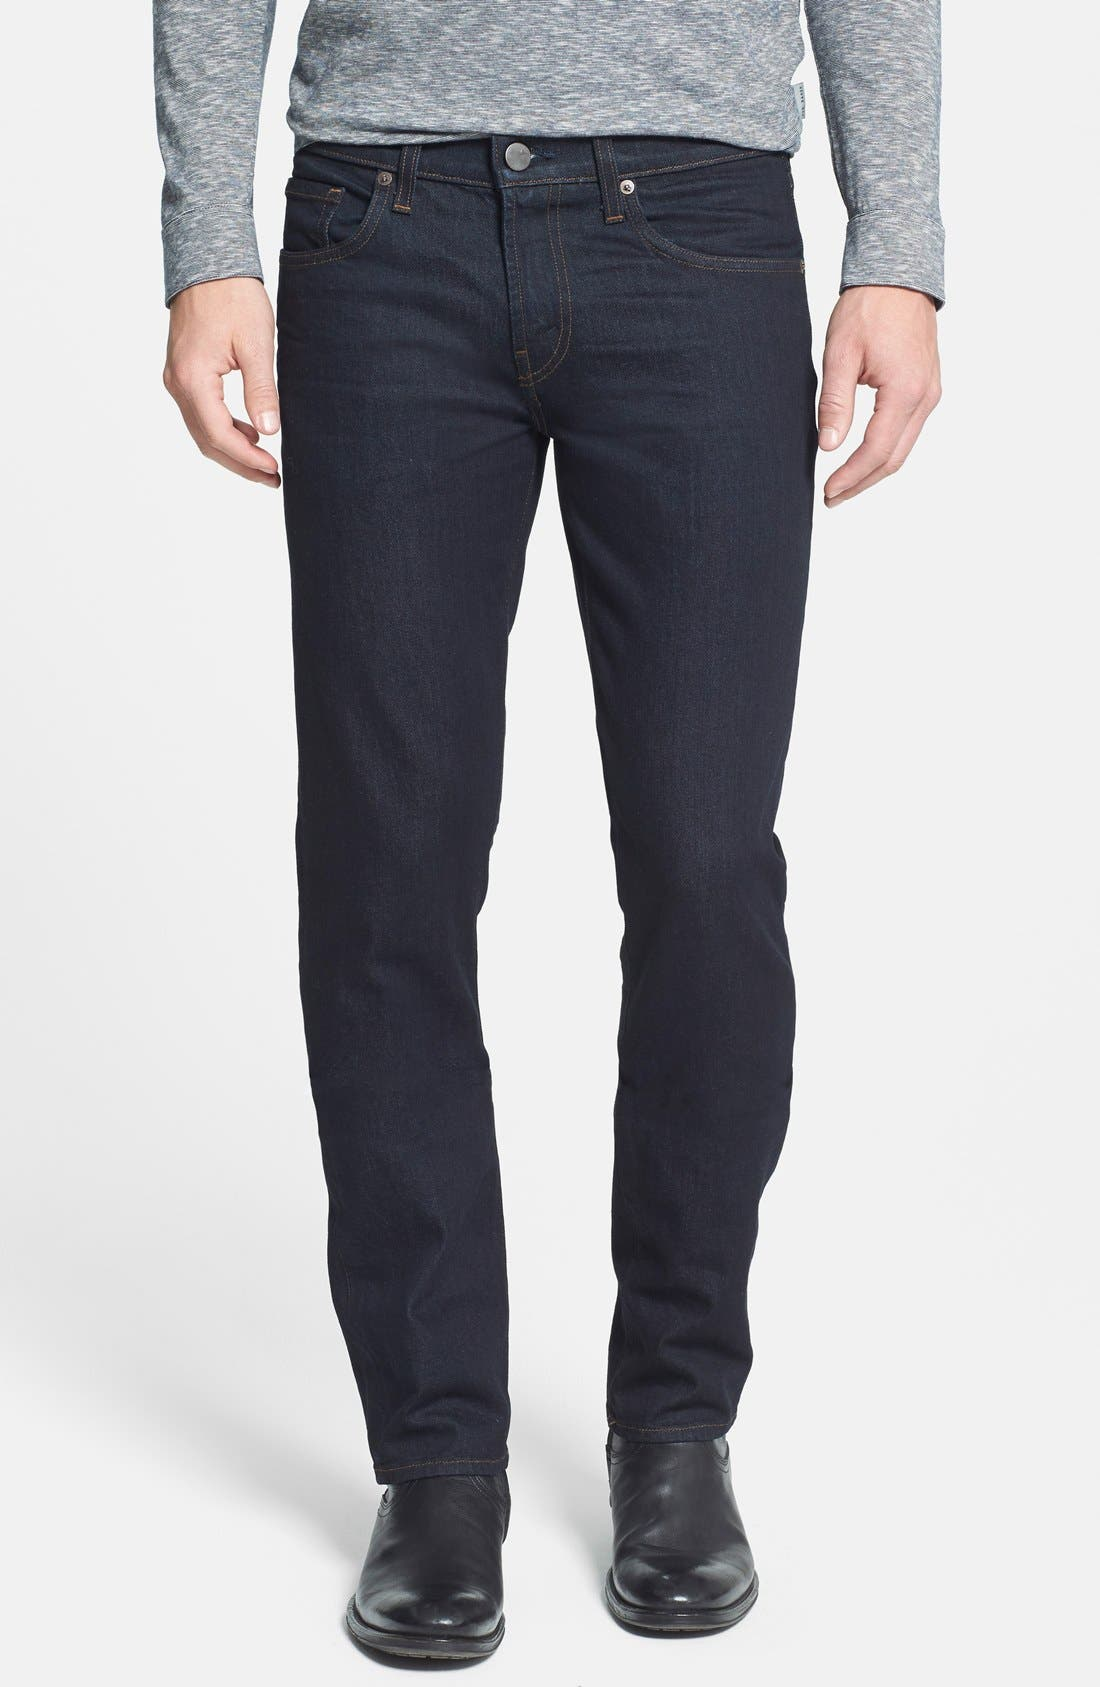 'Tyler' Slim Fit Coated Jeans,                             Main thumbnail 1, color,                             412